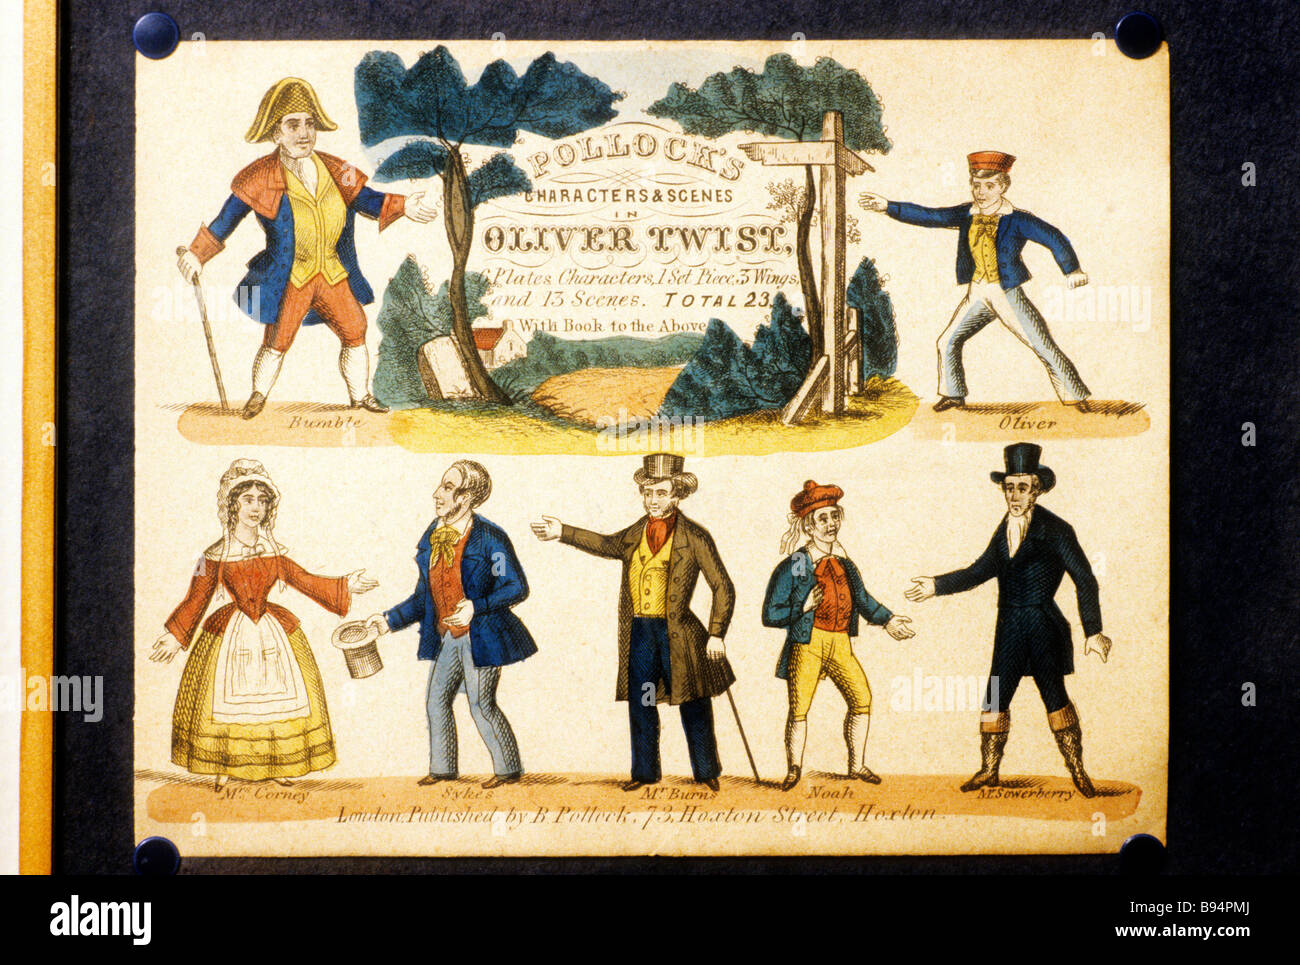 oliver twist stock photos oliver twist stock images alamy pollock s characters scenes from oliver twist by charles dickens english victorian novel novelist author sketch